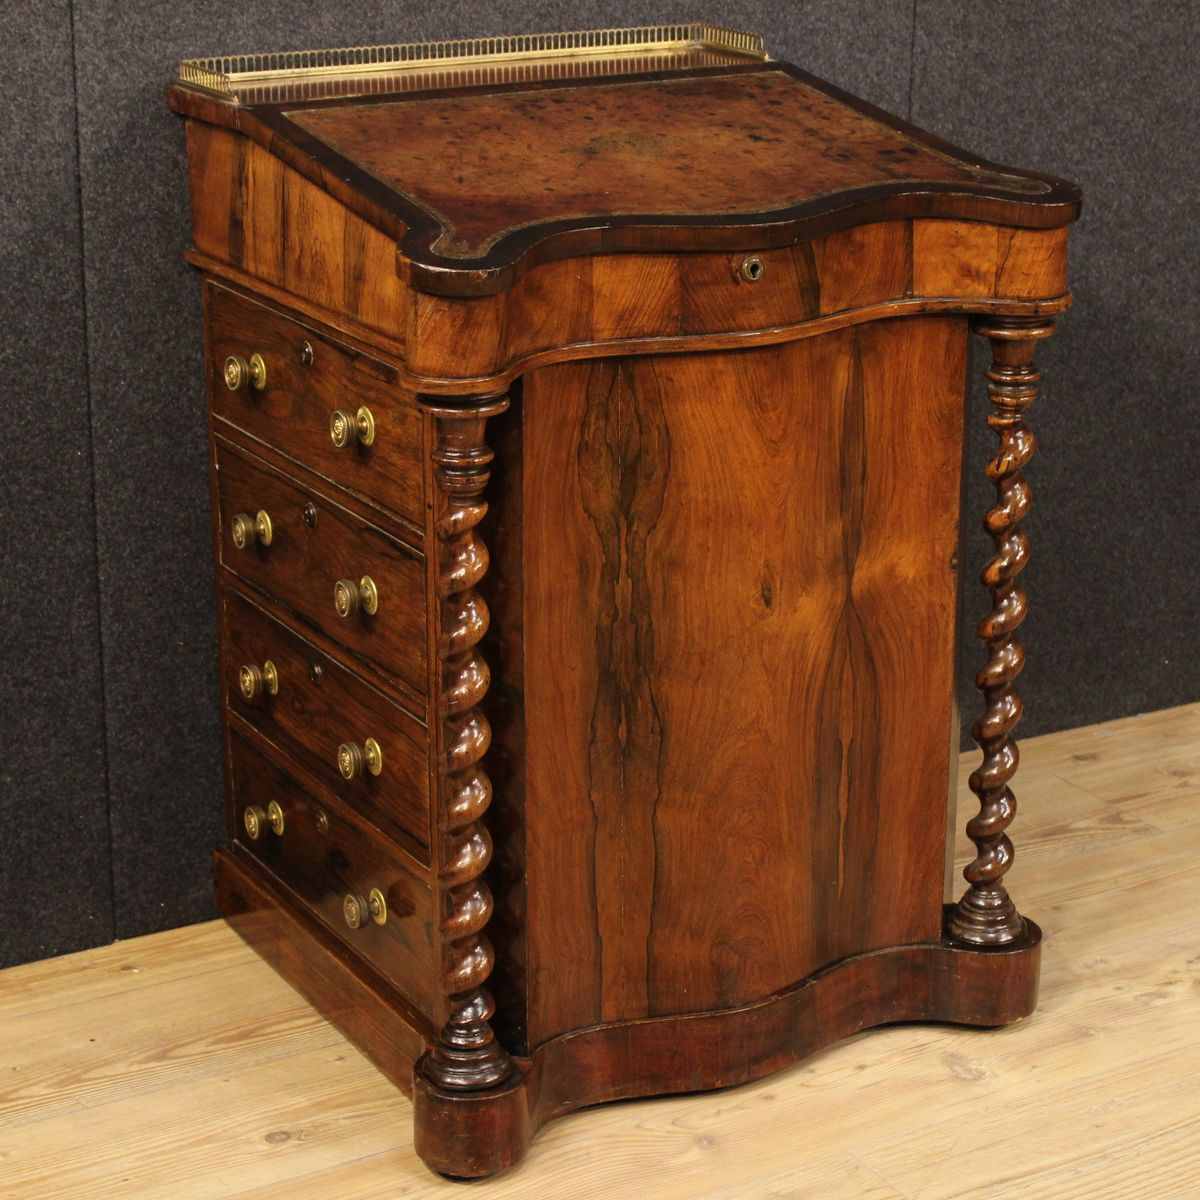 English Palisander and Mahogany Davenport Desk or Secretaire, 1870s - English Palisander And Mahogany Davenport Desk Or Secretaire